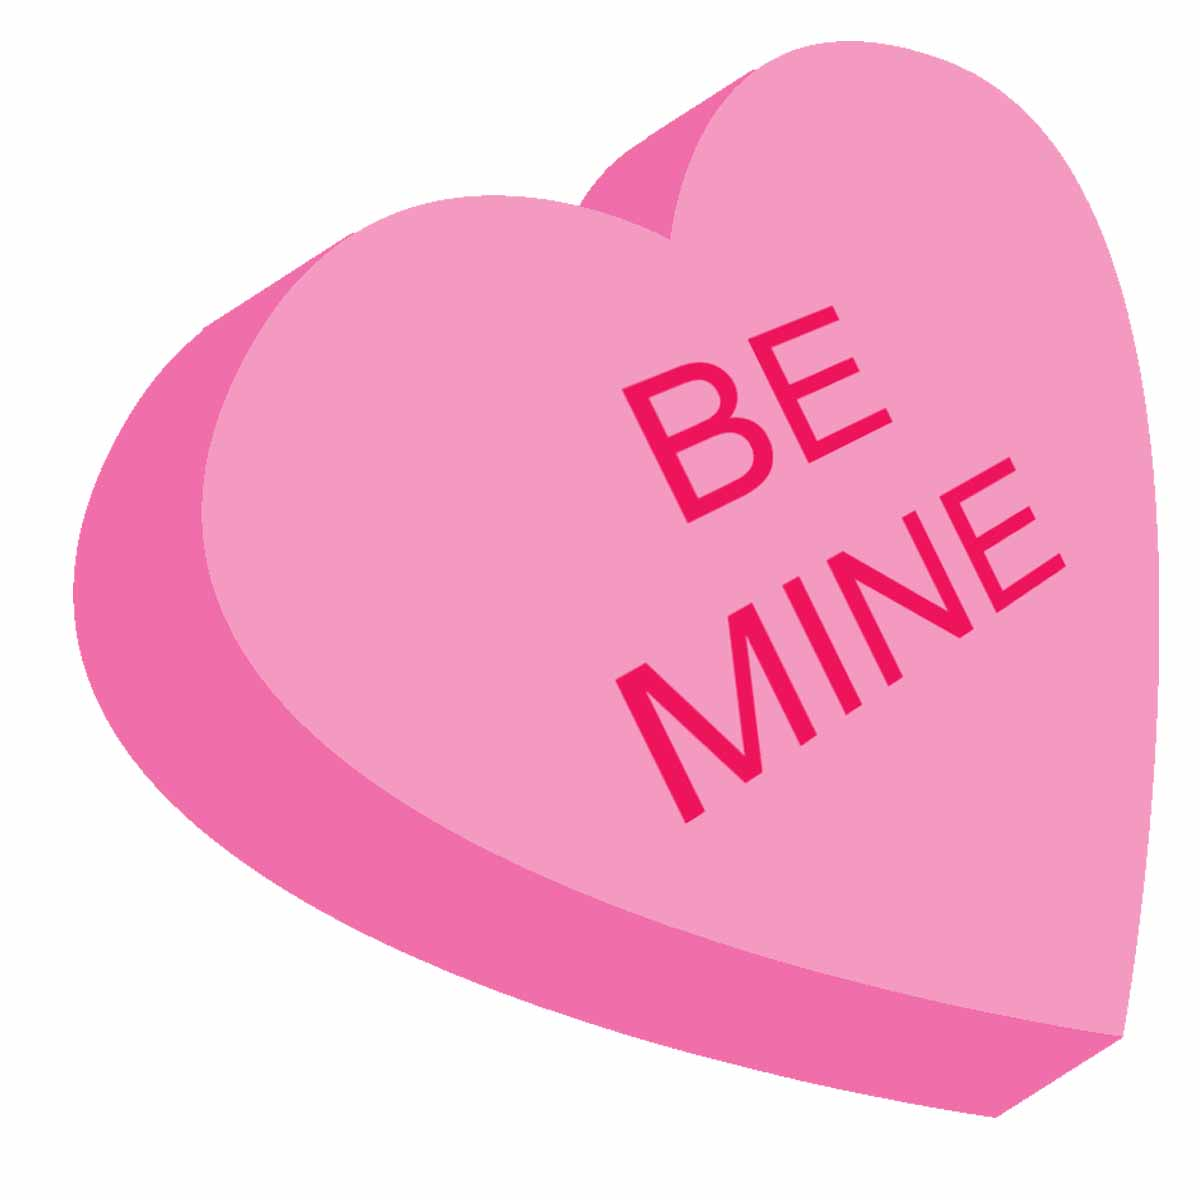 Free Valentine Candy Cliparts, Download Free Clip Art, Free.